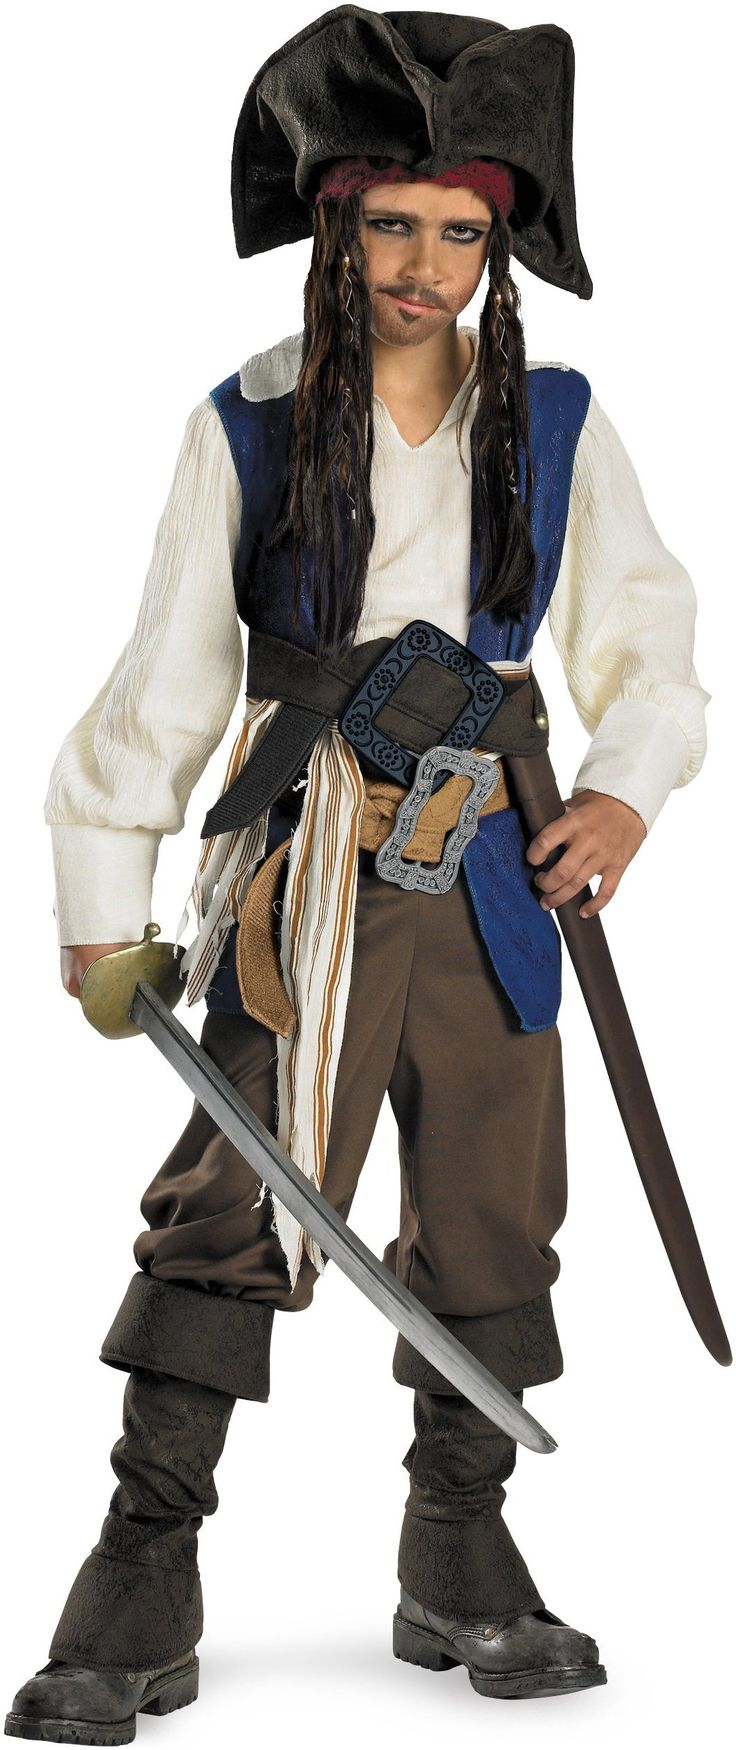 Pirates of the Caribbean 4 On Stranger Tides - Captain Jack Sparrow Child Costume from Buycostumes.com